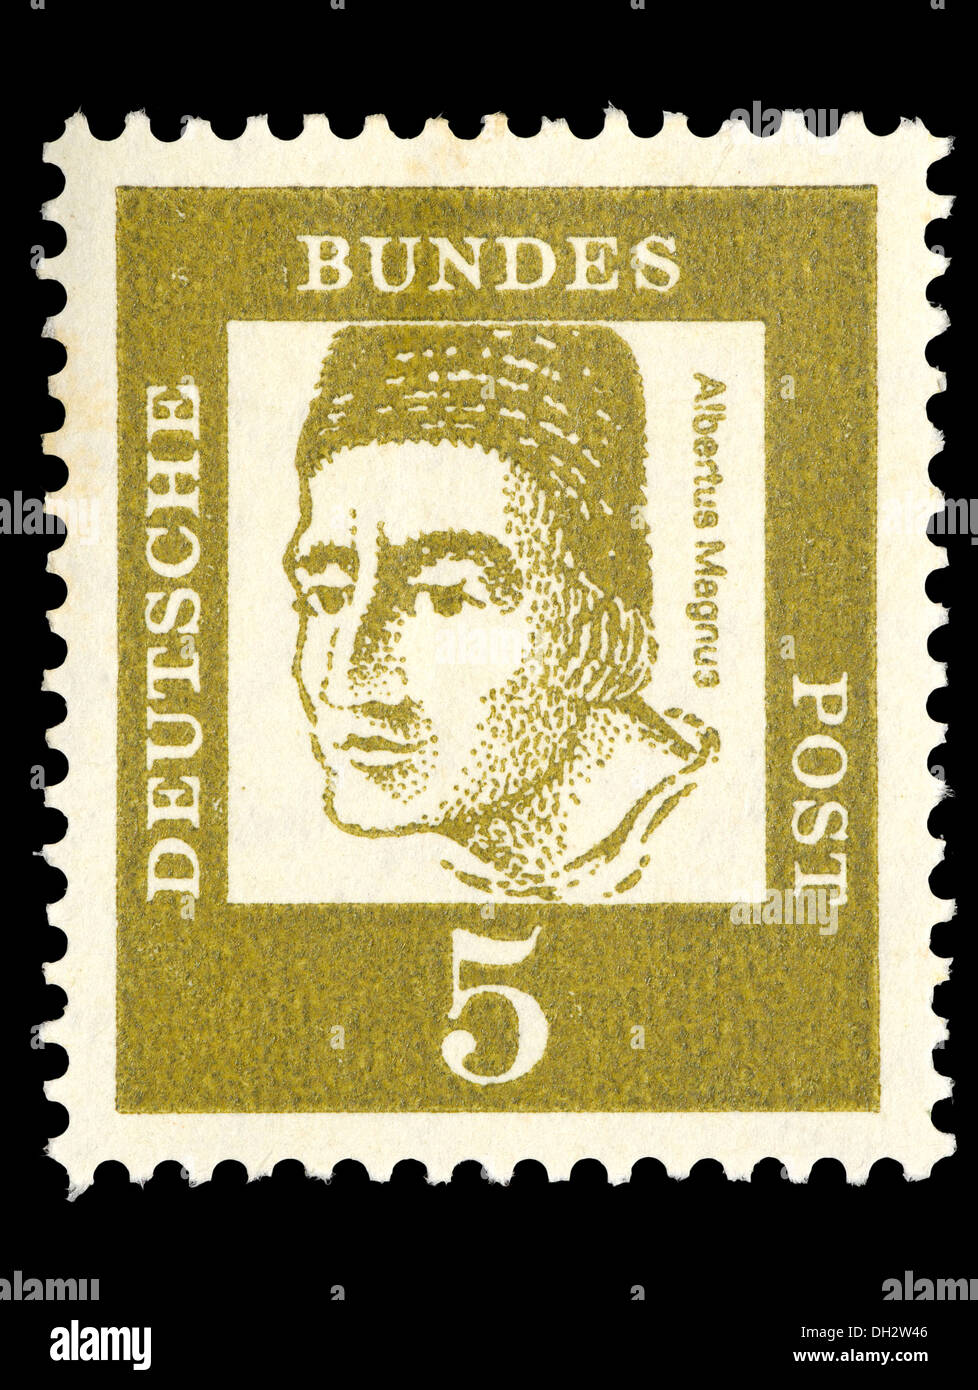 Portrait of Albertus Magnus (1193-1280: Catholic saint, German Dominican friar and bishop) on German postage stamp - Stock Image